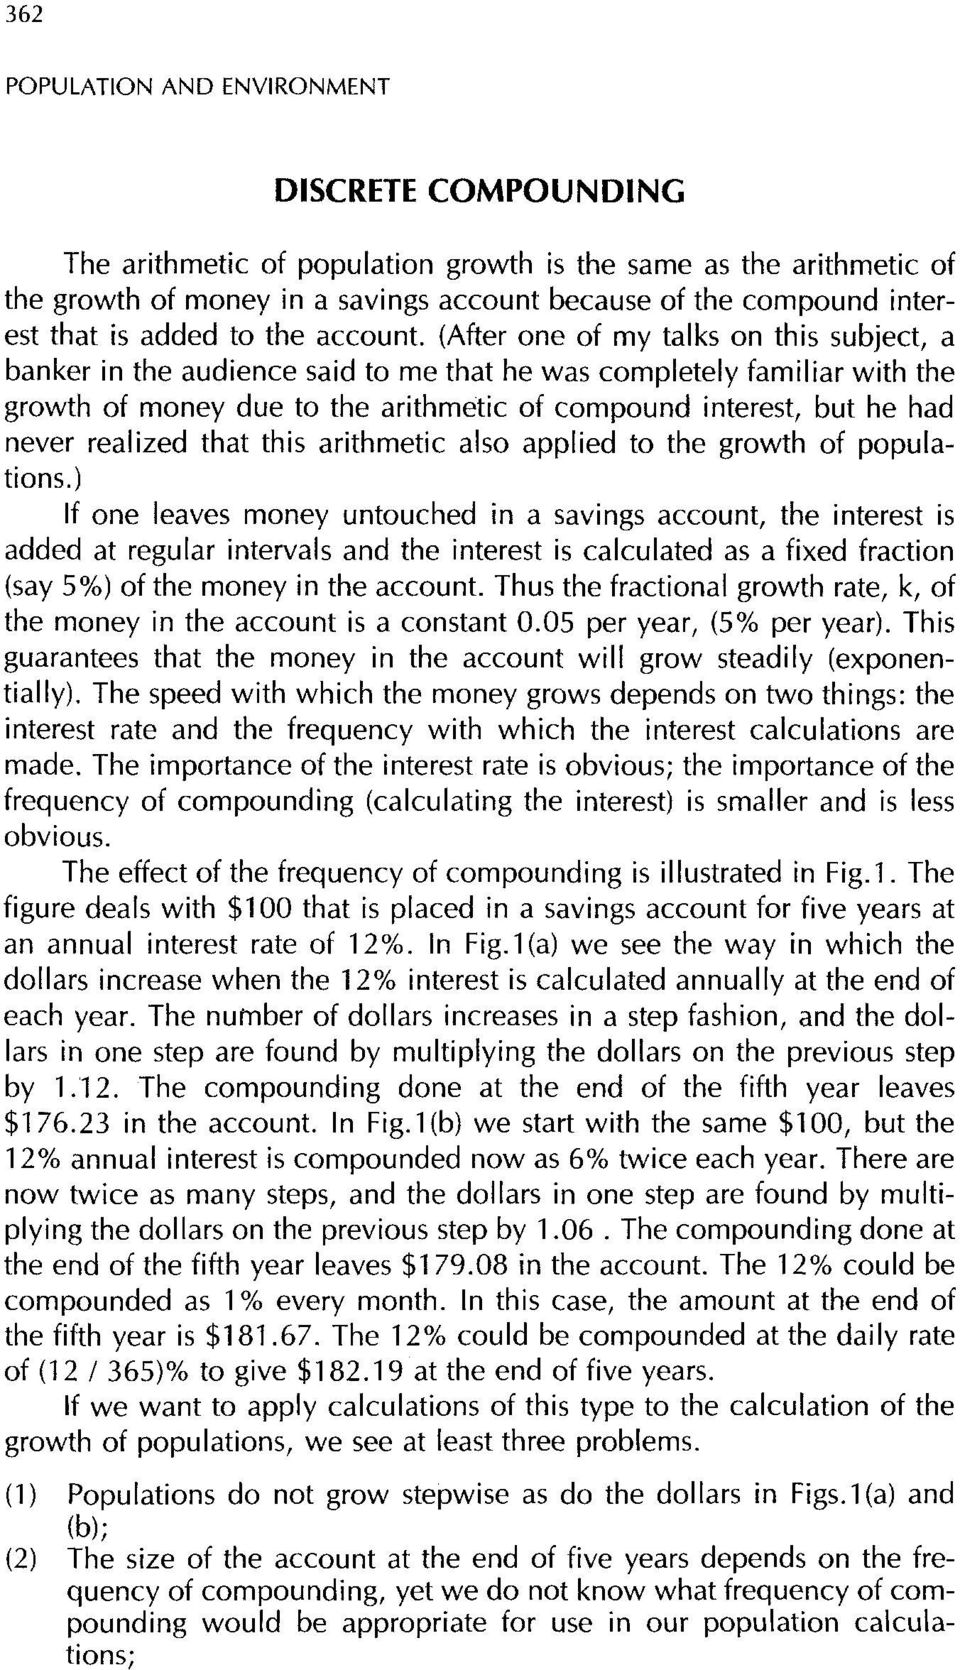 (After one of my talks on this subject, a banker in the audience said to me that he was completely familiar with the growth of money due to the arithmetic of compound interest, but he had never